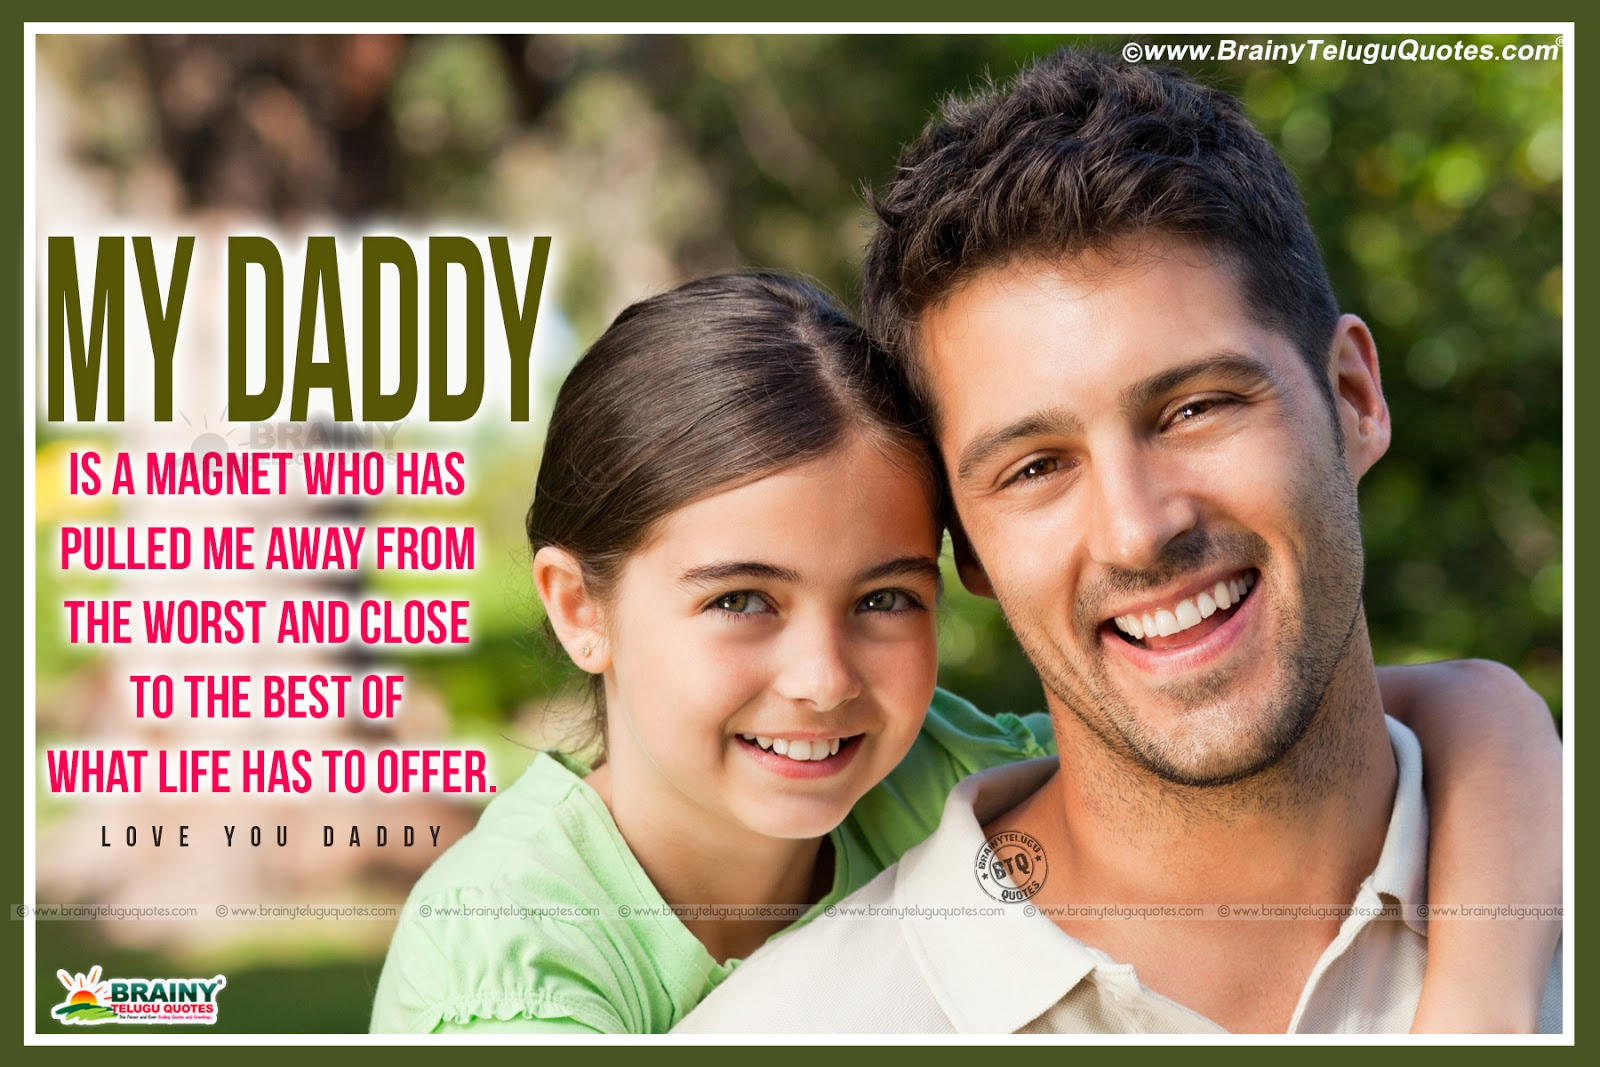 love father daughter relationship quotes